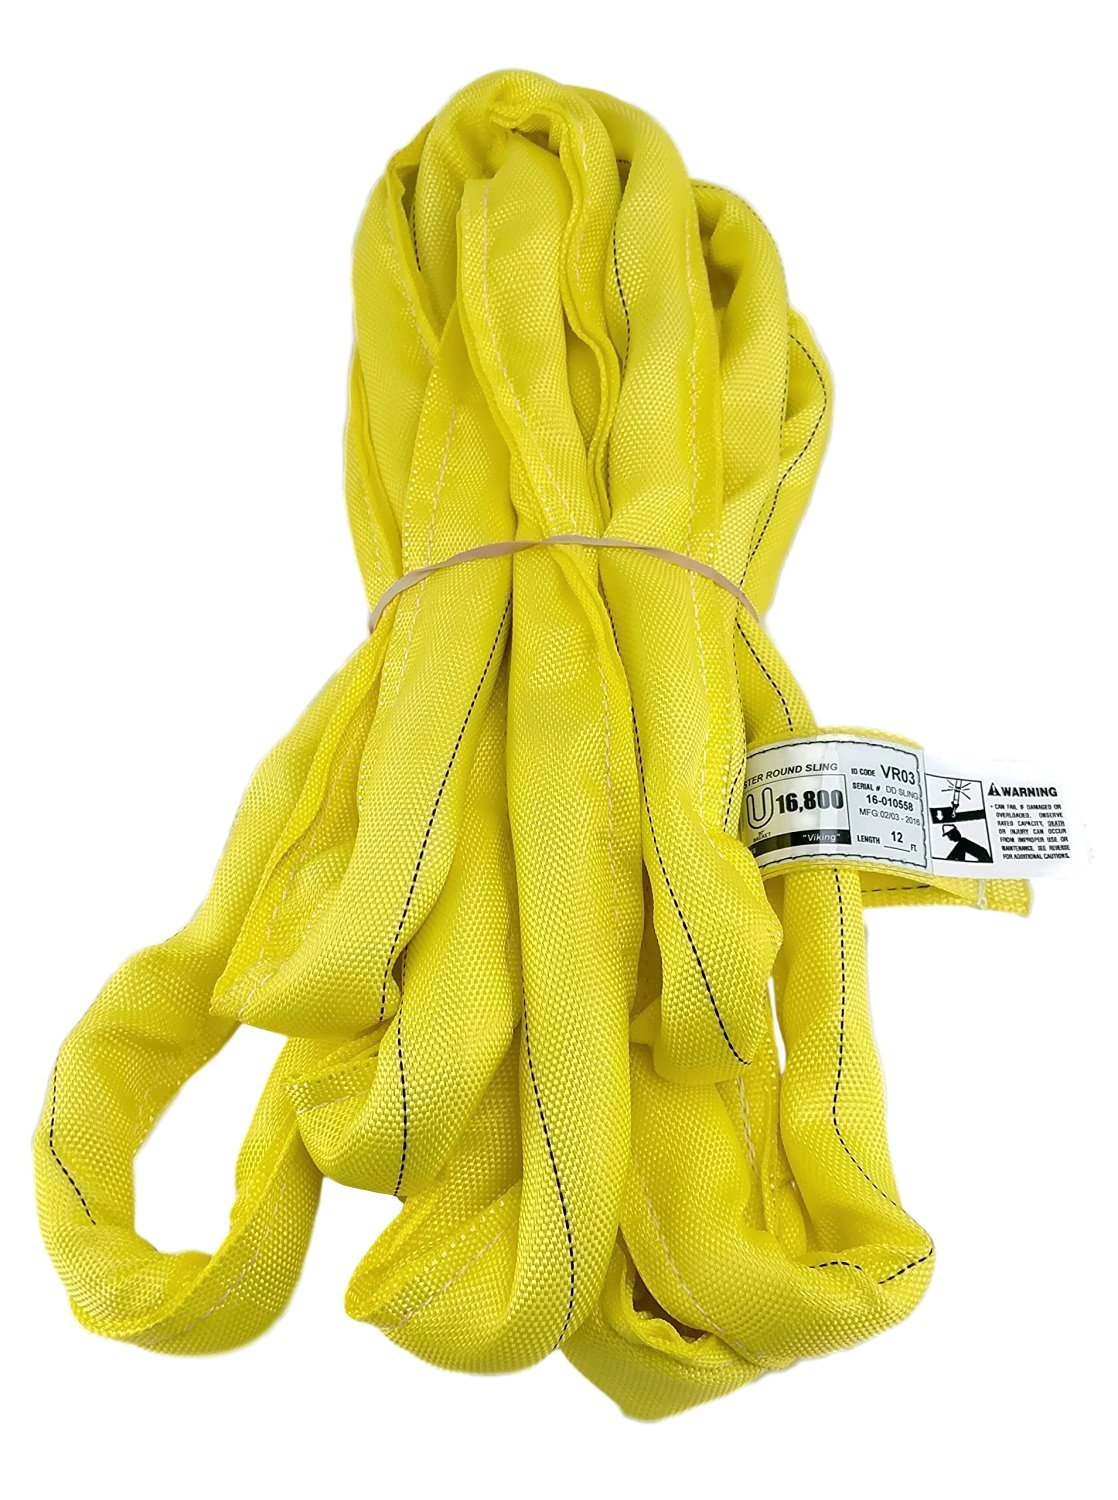 USA Made VR3 X 12' Yellow Slings 4'-30' Lengths In Listing, DOUBLE PLY COVER Endless Round Poly Lifting Slings, 8,400 lbs Vertical, 6,720 lbs Choker, 16,800 lbs Basket(USA Poly) (12 FT)